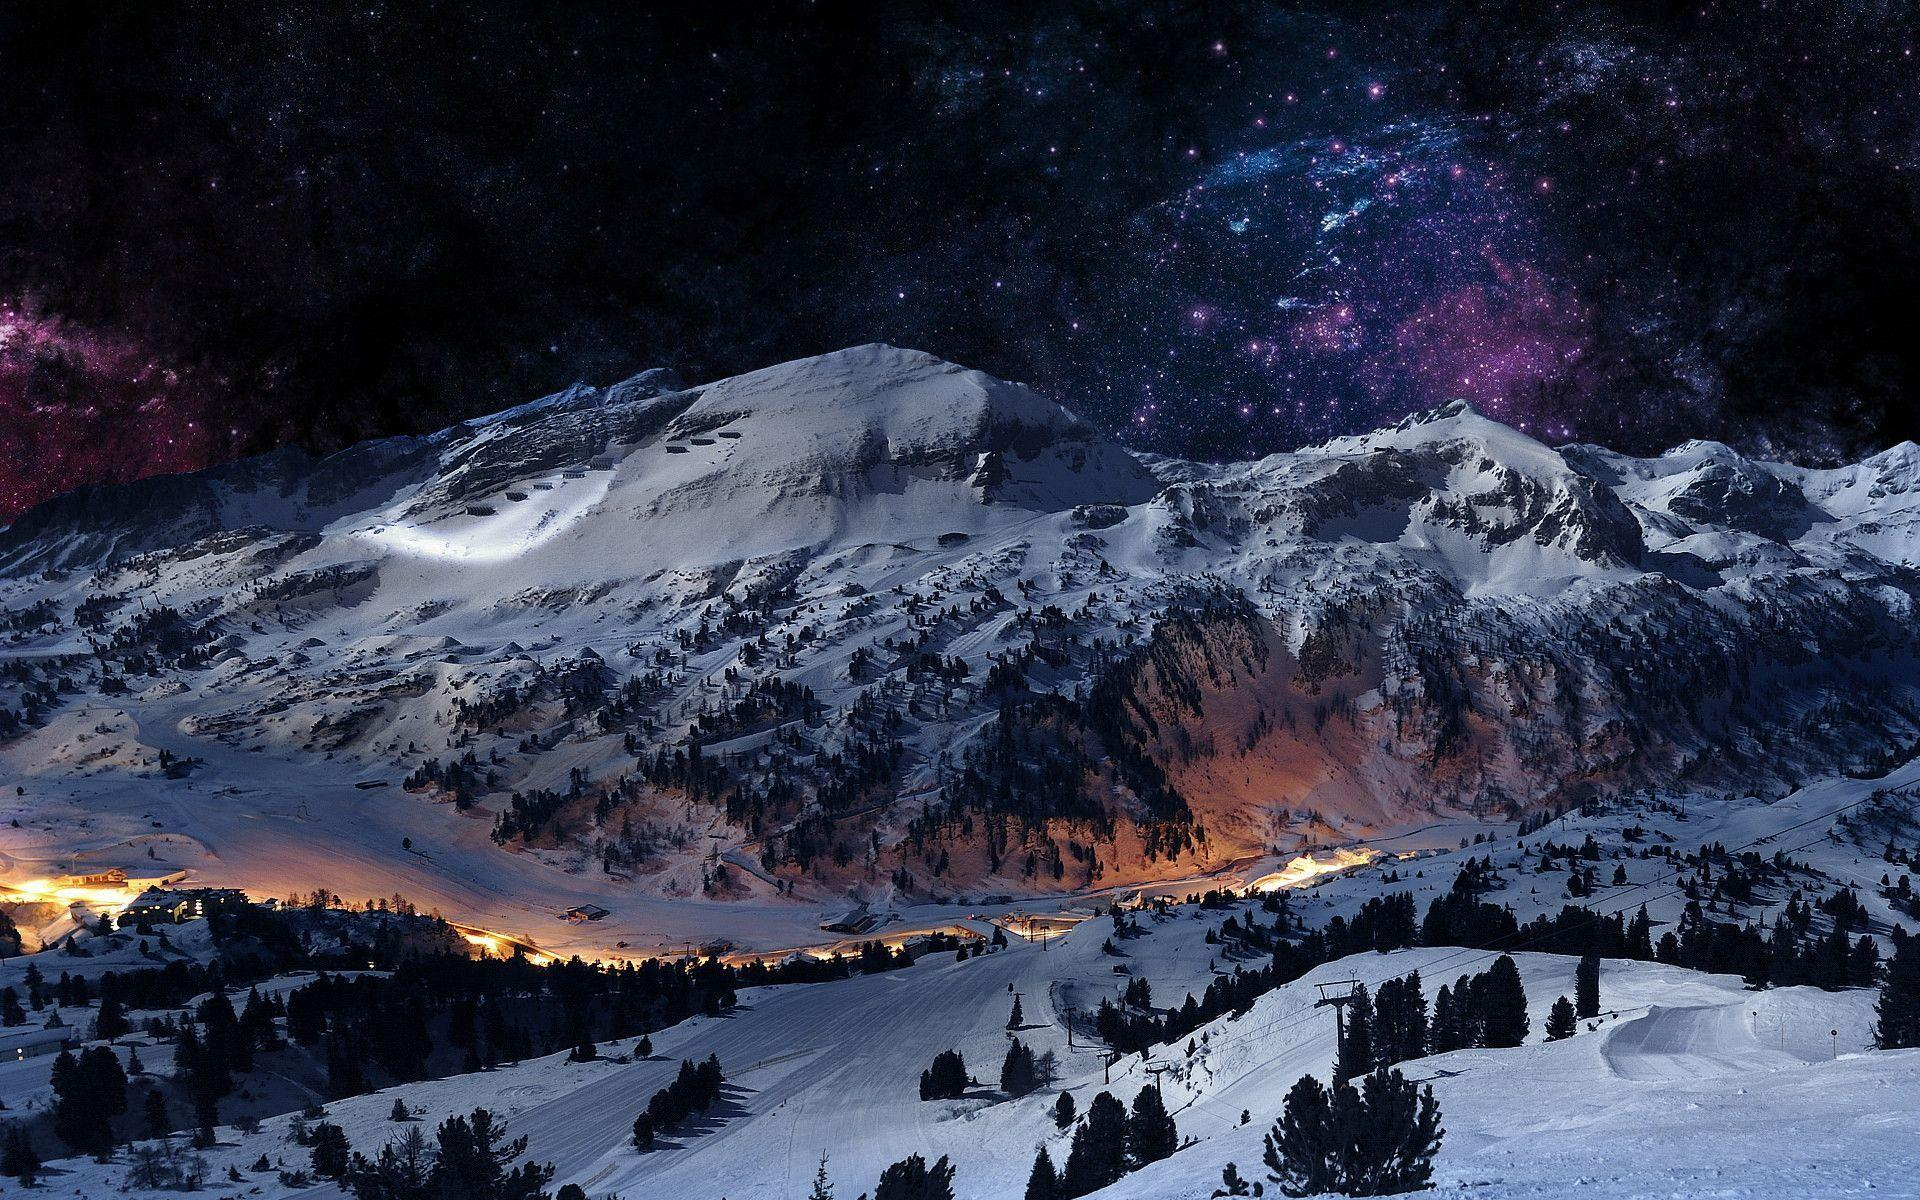 Snow Mountain Night Hd Backgrounds 8 HD Wallpapers